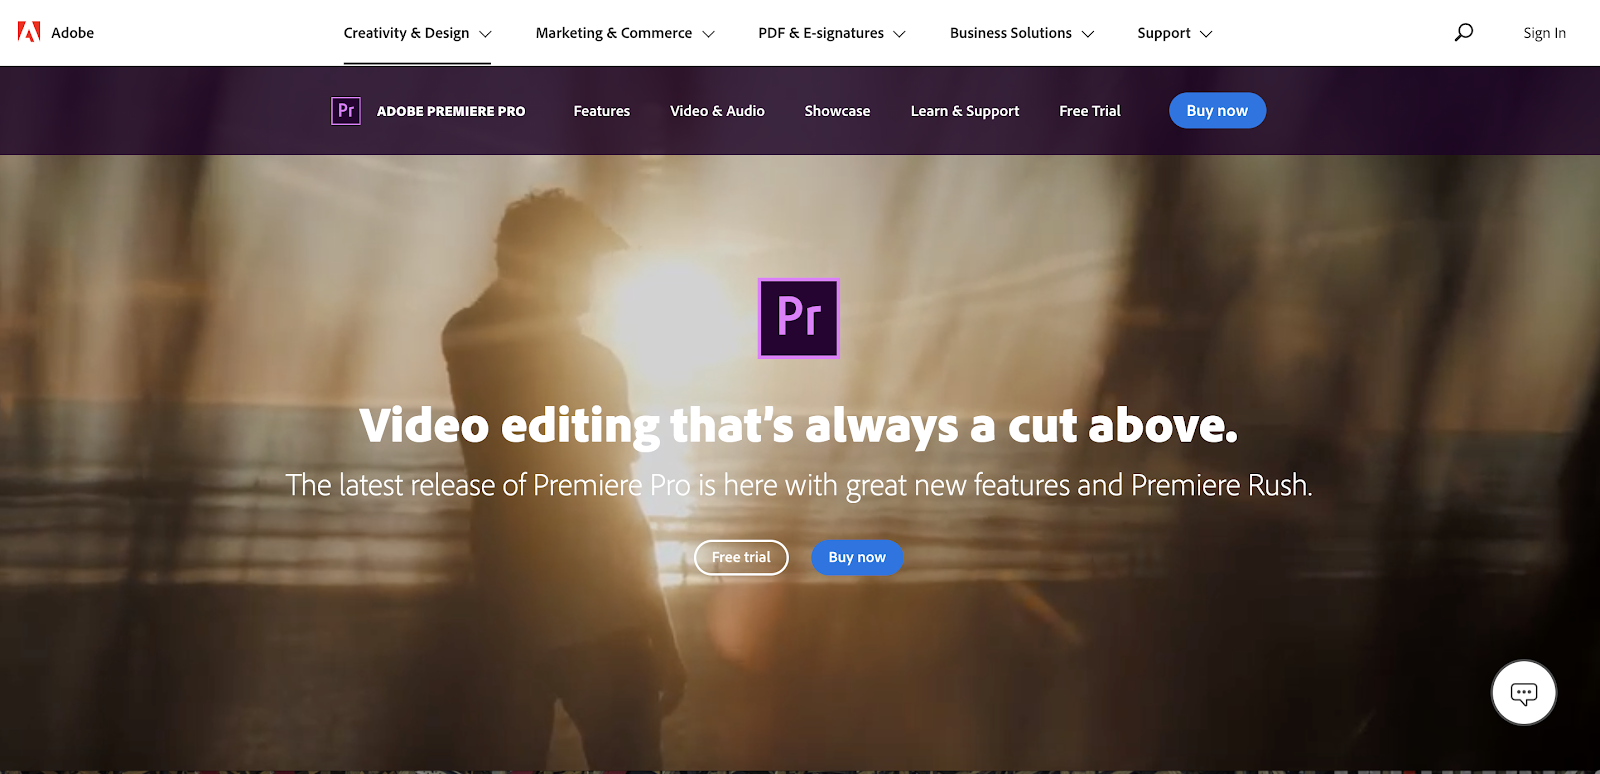 Adobe Premiere Pro video editing software homepage